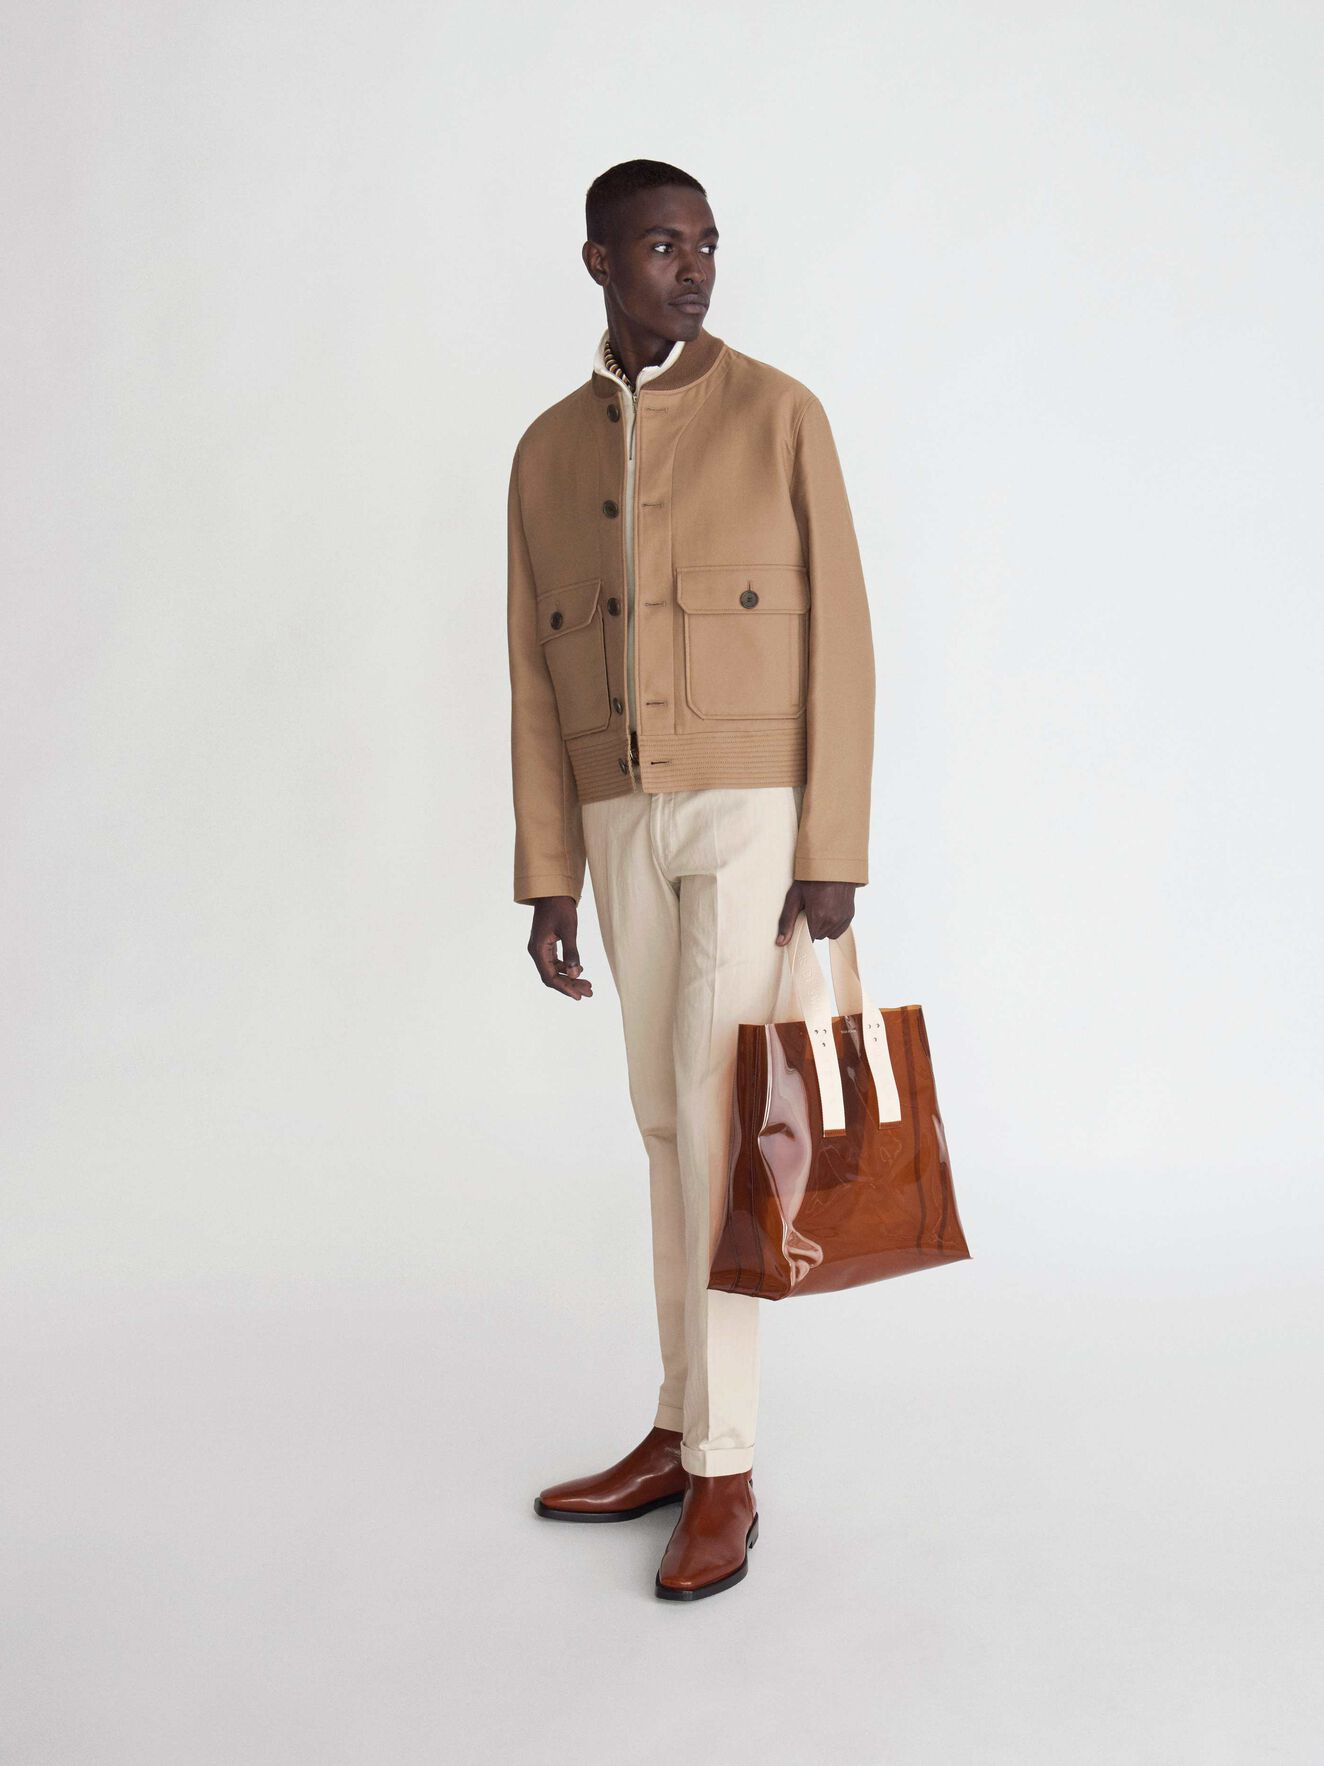 Tund Bag in Cognac from Tiger of Sweden